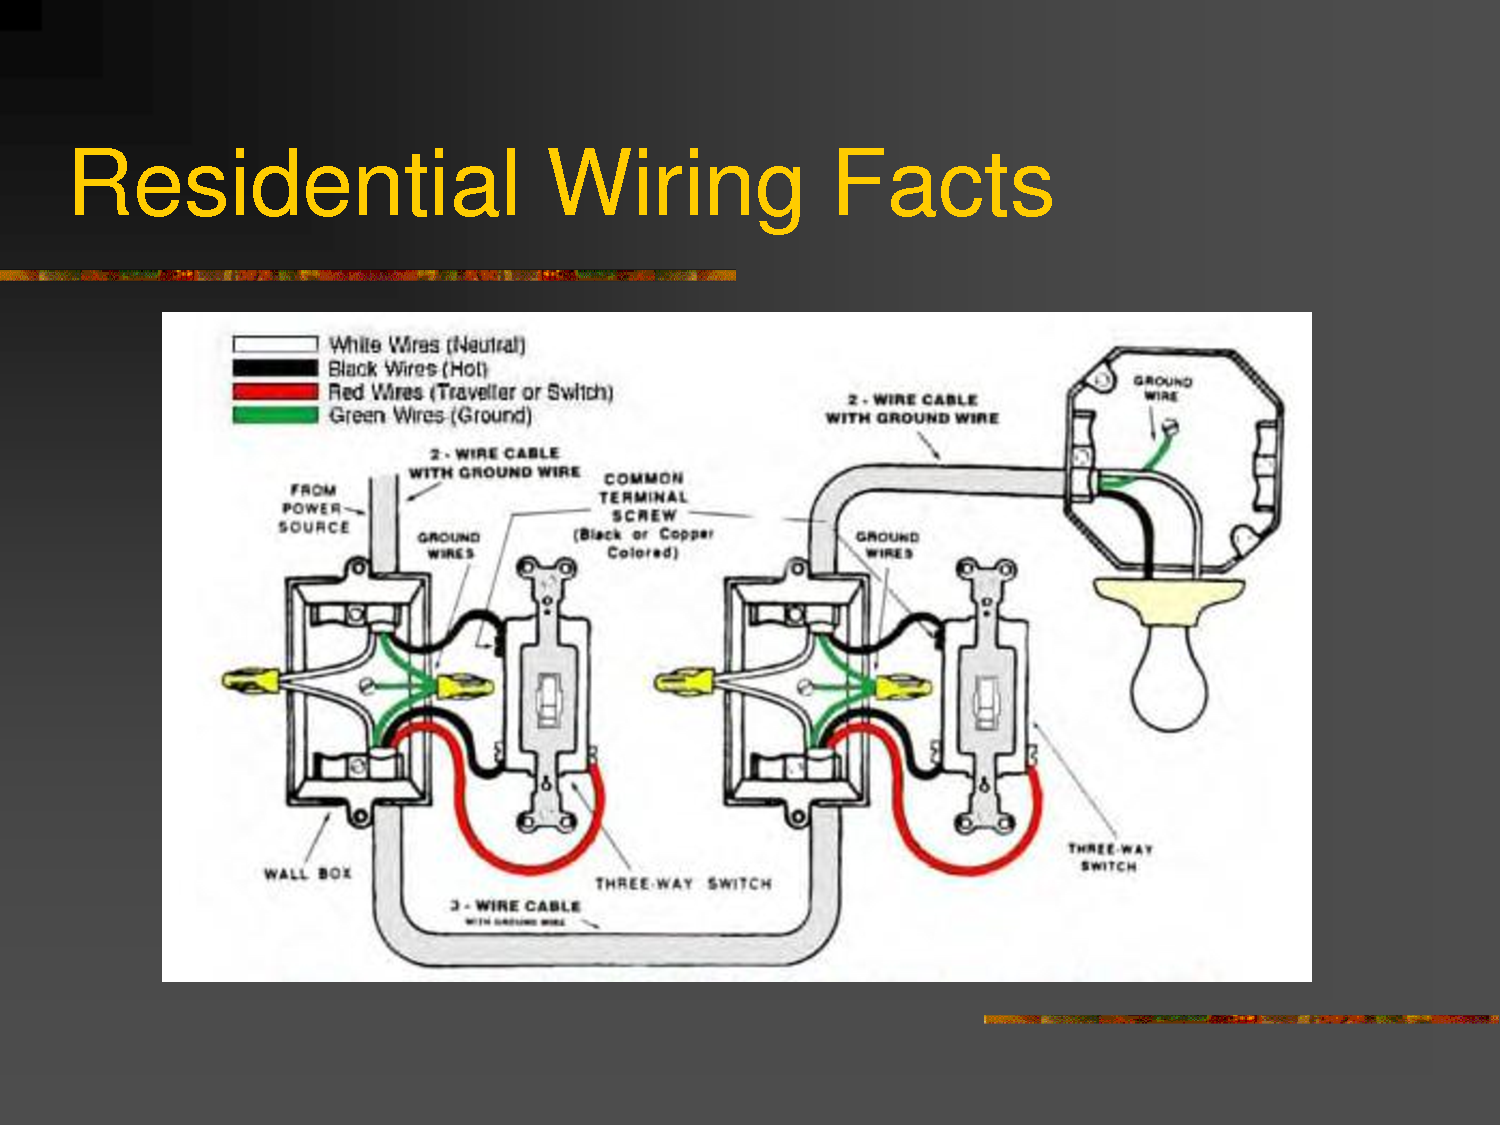 residential wiring diagrams wiring diagram name residential wiring diagram examples 4 best images of residential wiring [ 1500 x 1125 Pixel ]